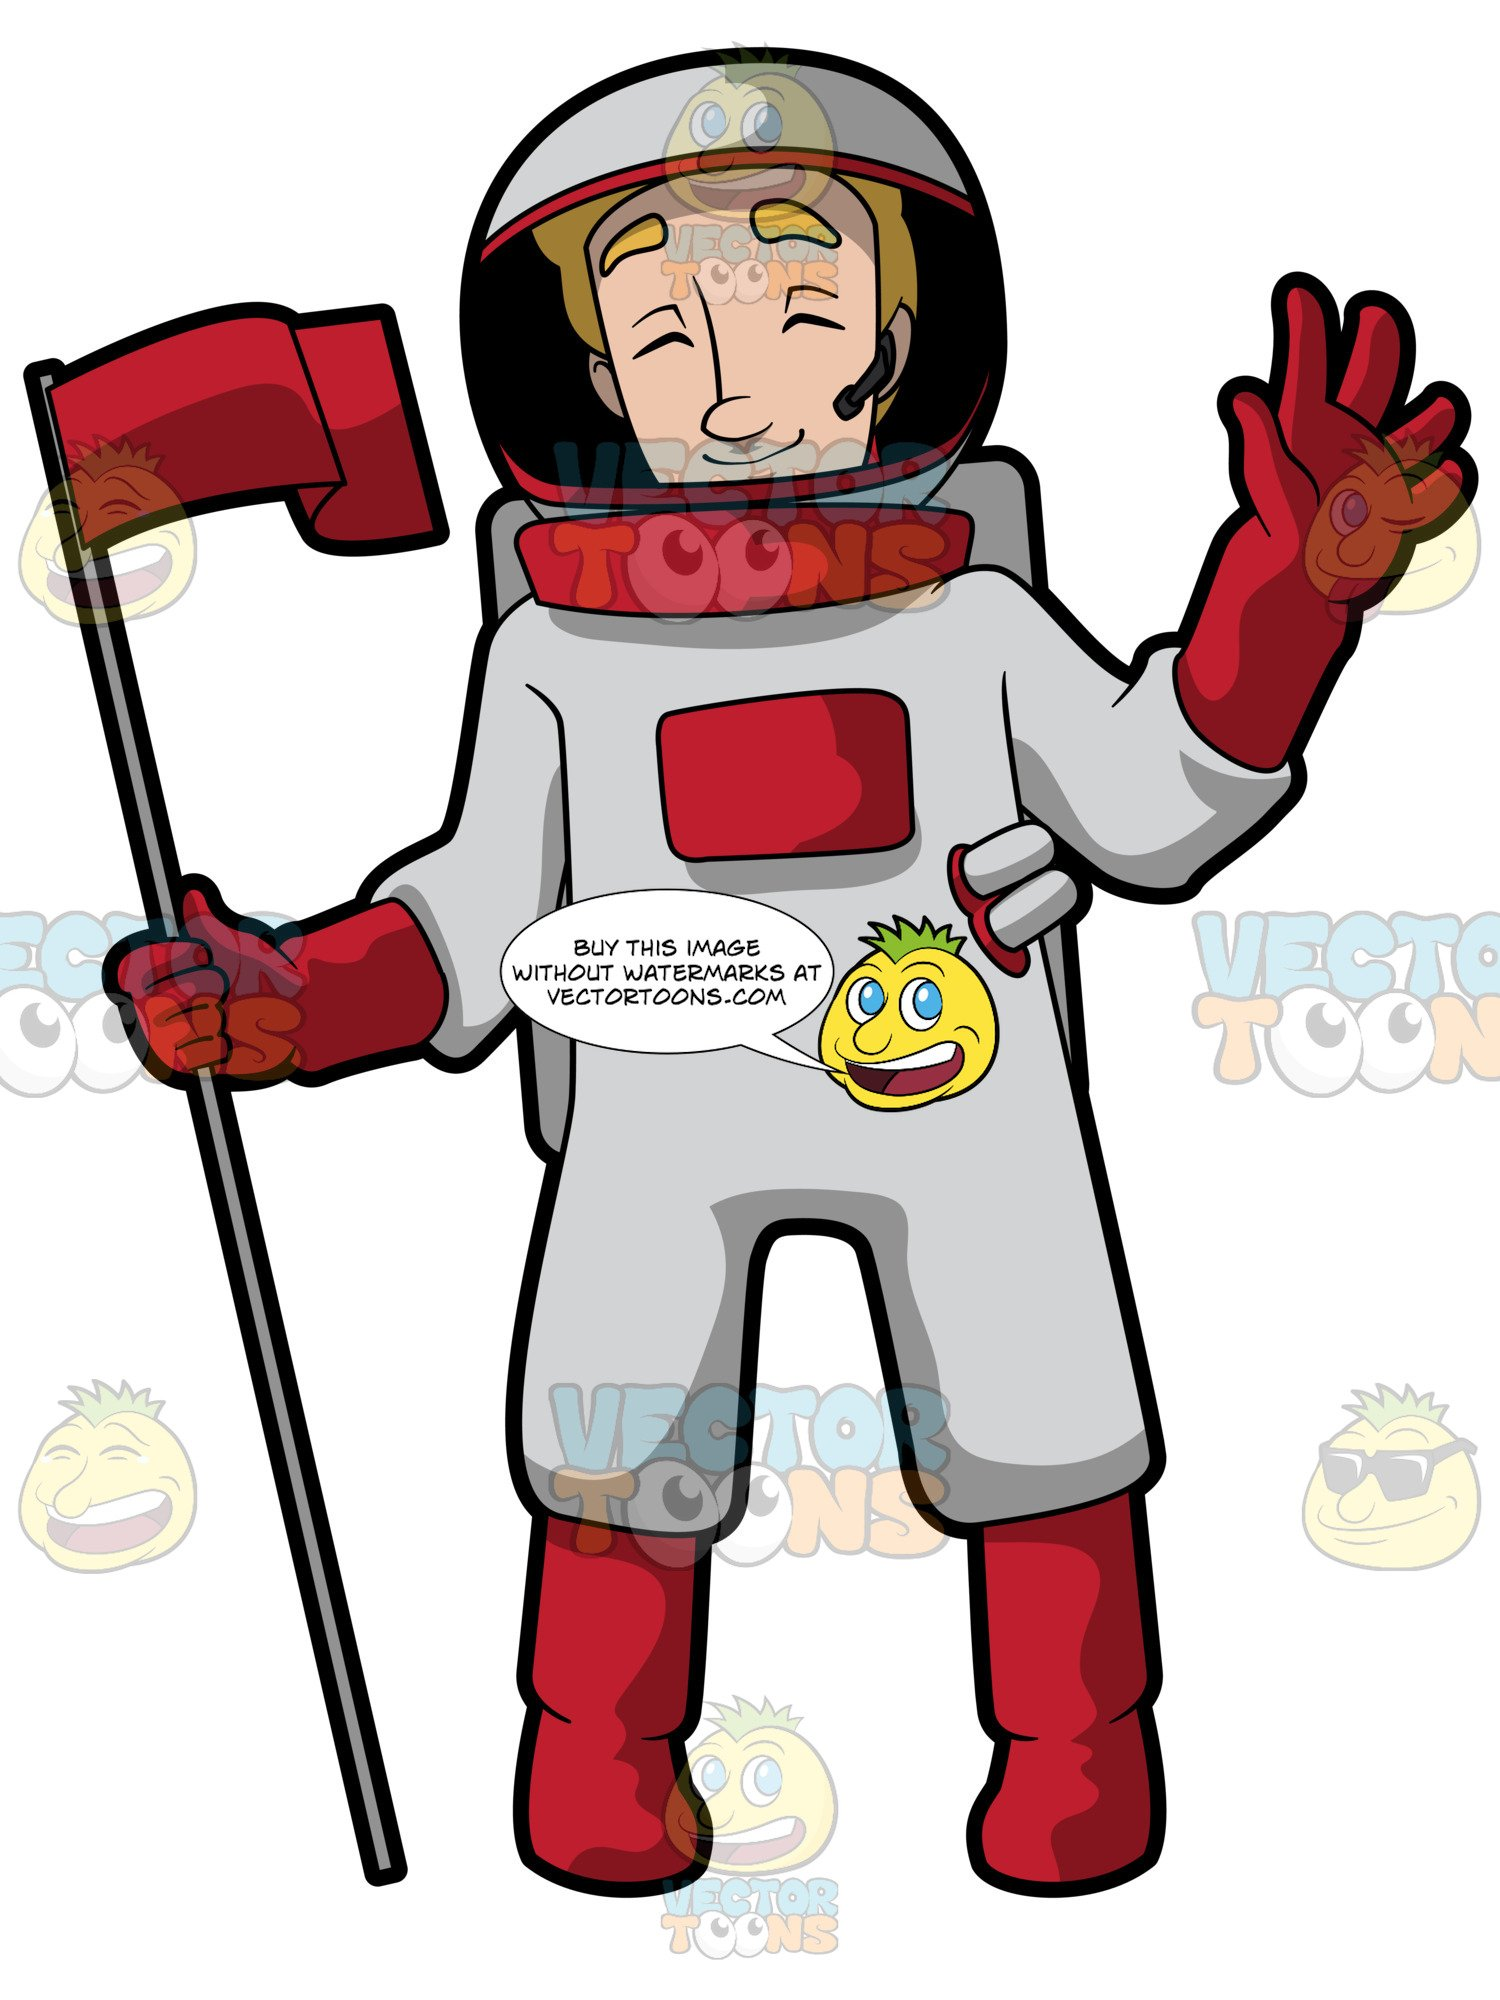 Astronaut holding flag clipart svg royalty free stock A Female Astronaut Holding A Pole With A Waving Red Flag Greets The World  During A Mission Telecast svg royalty free stock